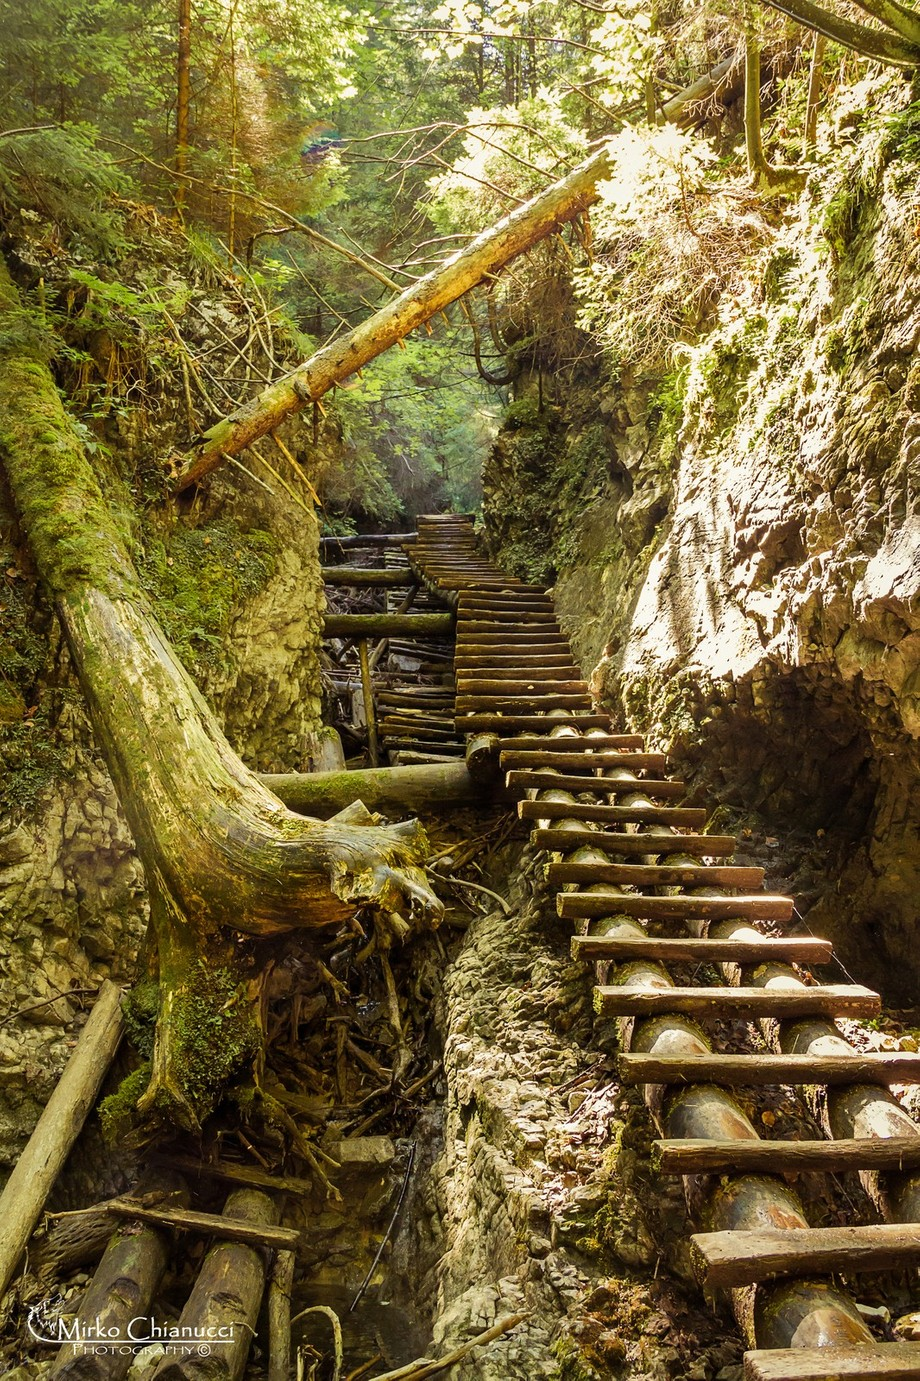 Stairway to the unknown by mirkokianu - Stairways Photo Contest